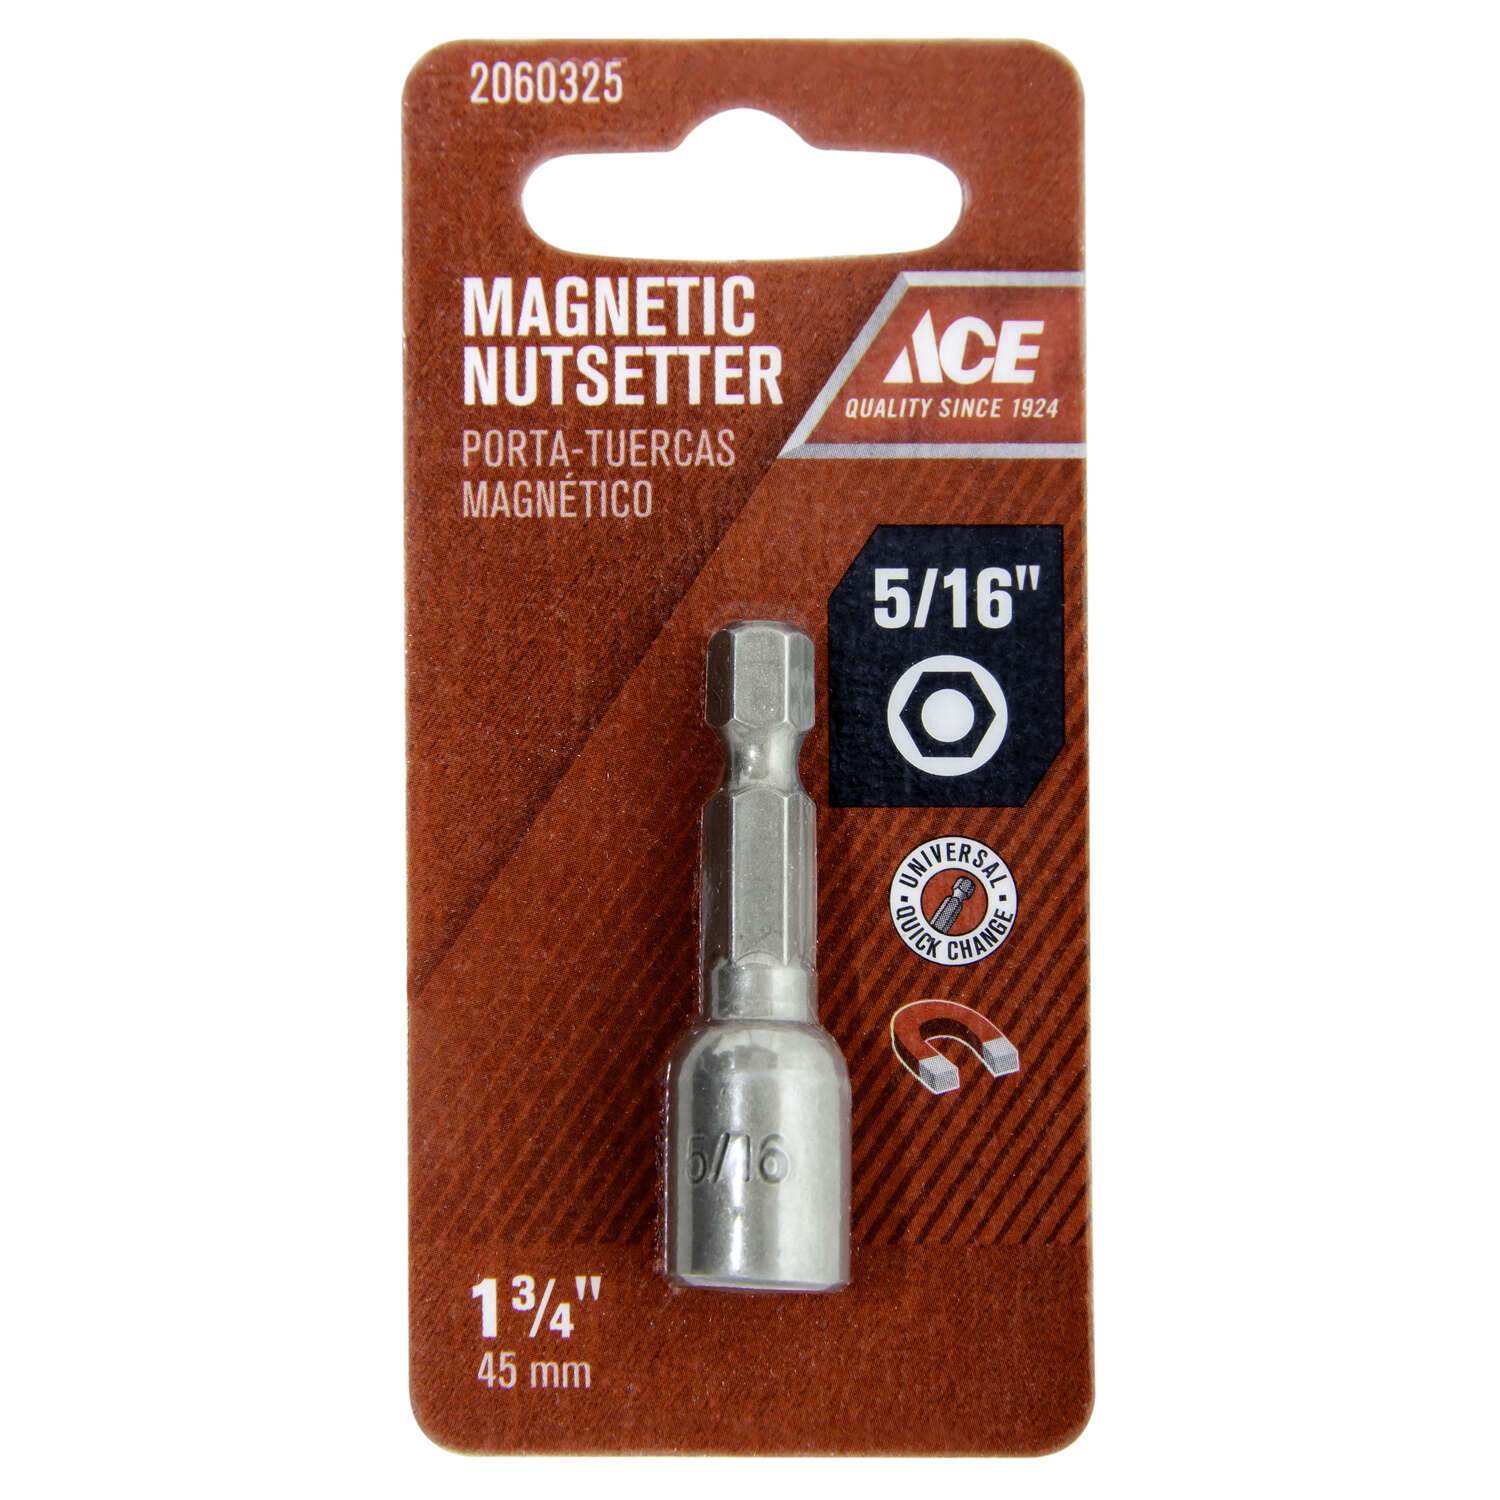 Ace  5/16 in.  x 1-3/4 in. L Chrome Vanadium Steel  Magnetic Nut Setter  1 pc.